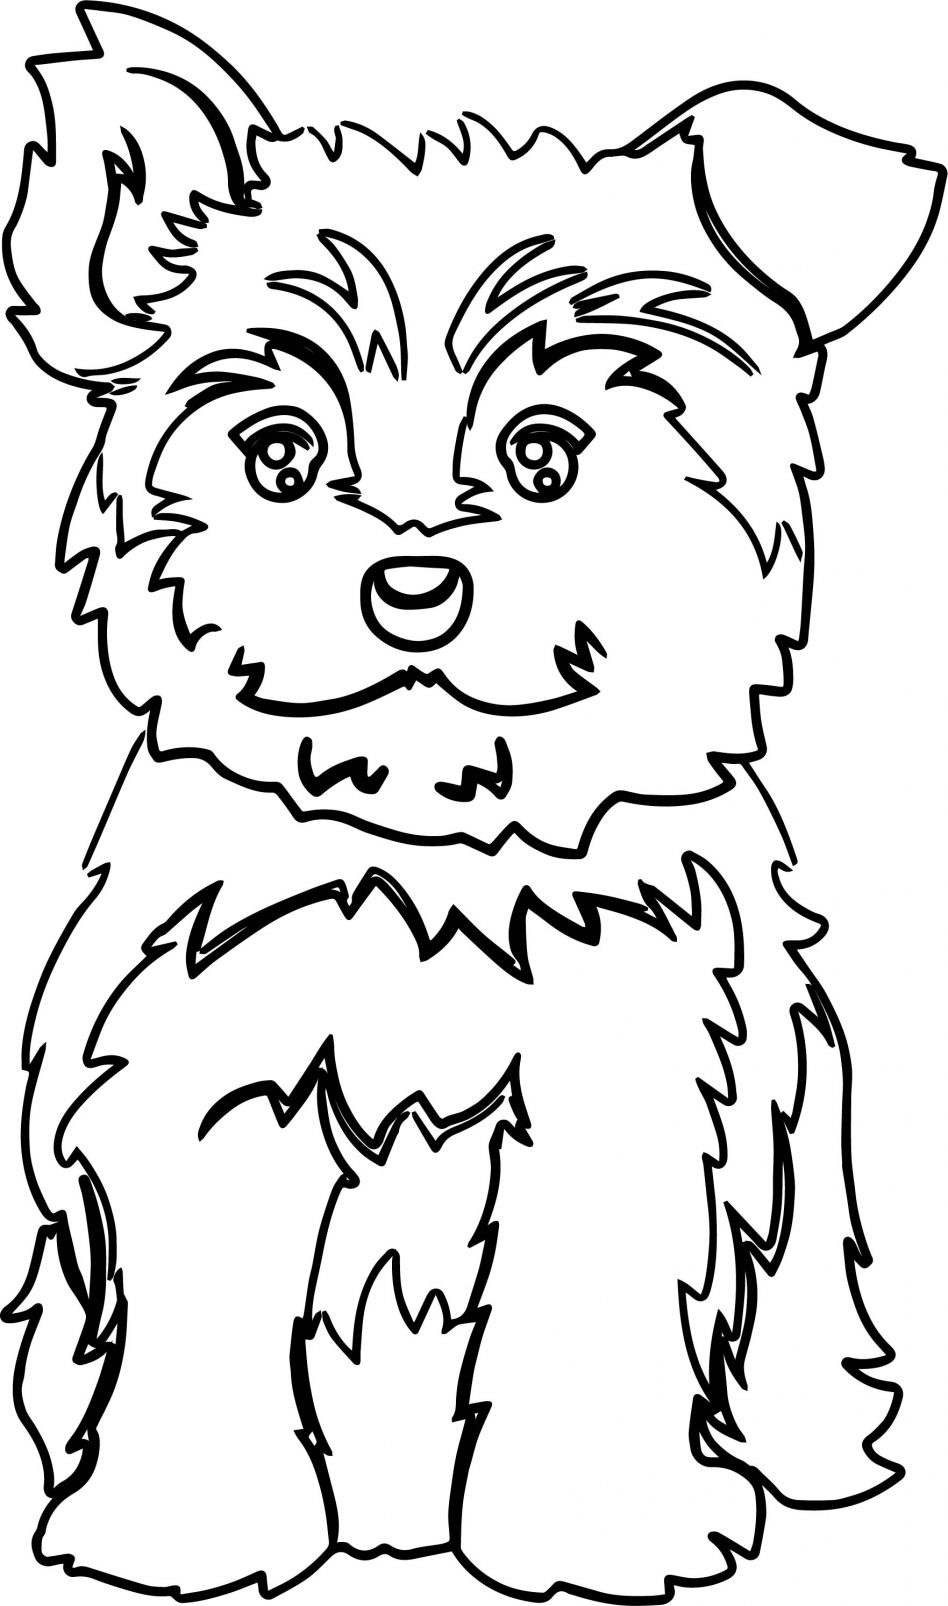 yorkie coloring sheet yorkshire terrier coloring page free printable coloring sheet coloring yorkie